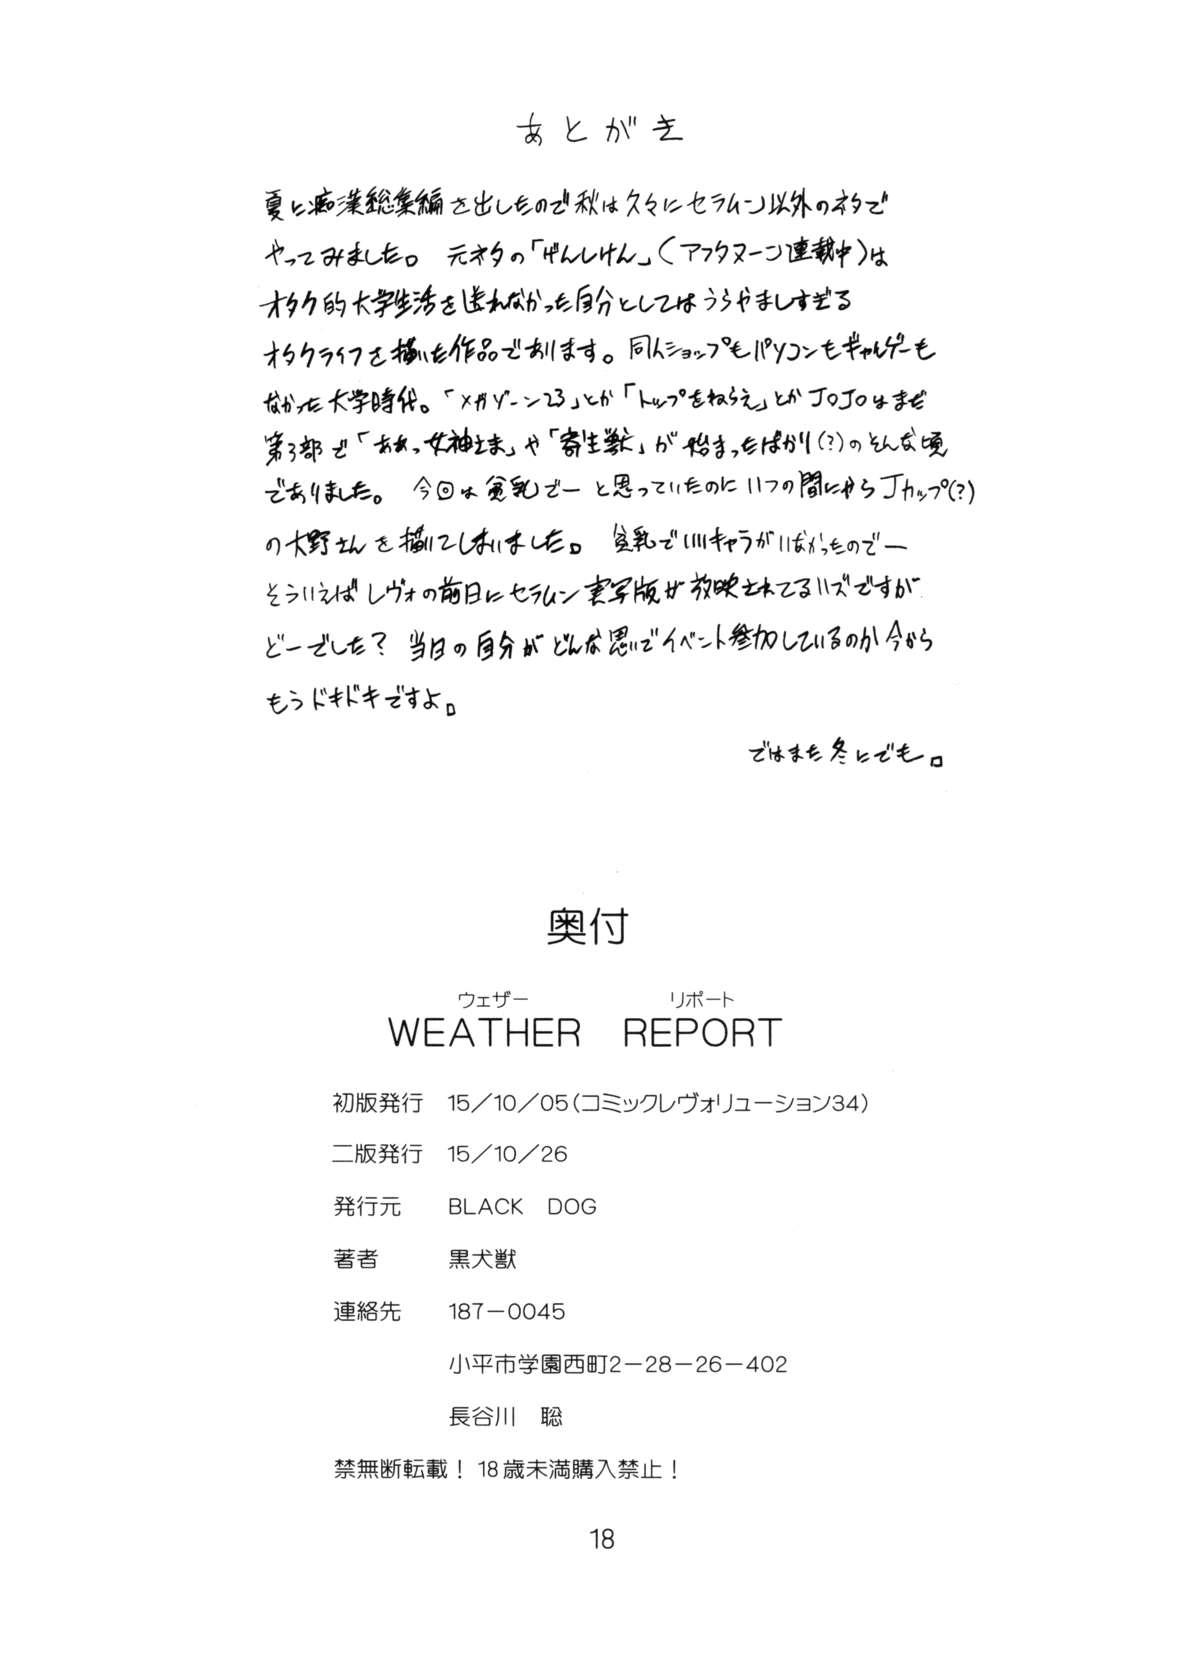 WEATHER REPORT 16